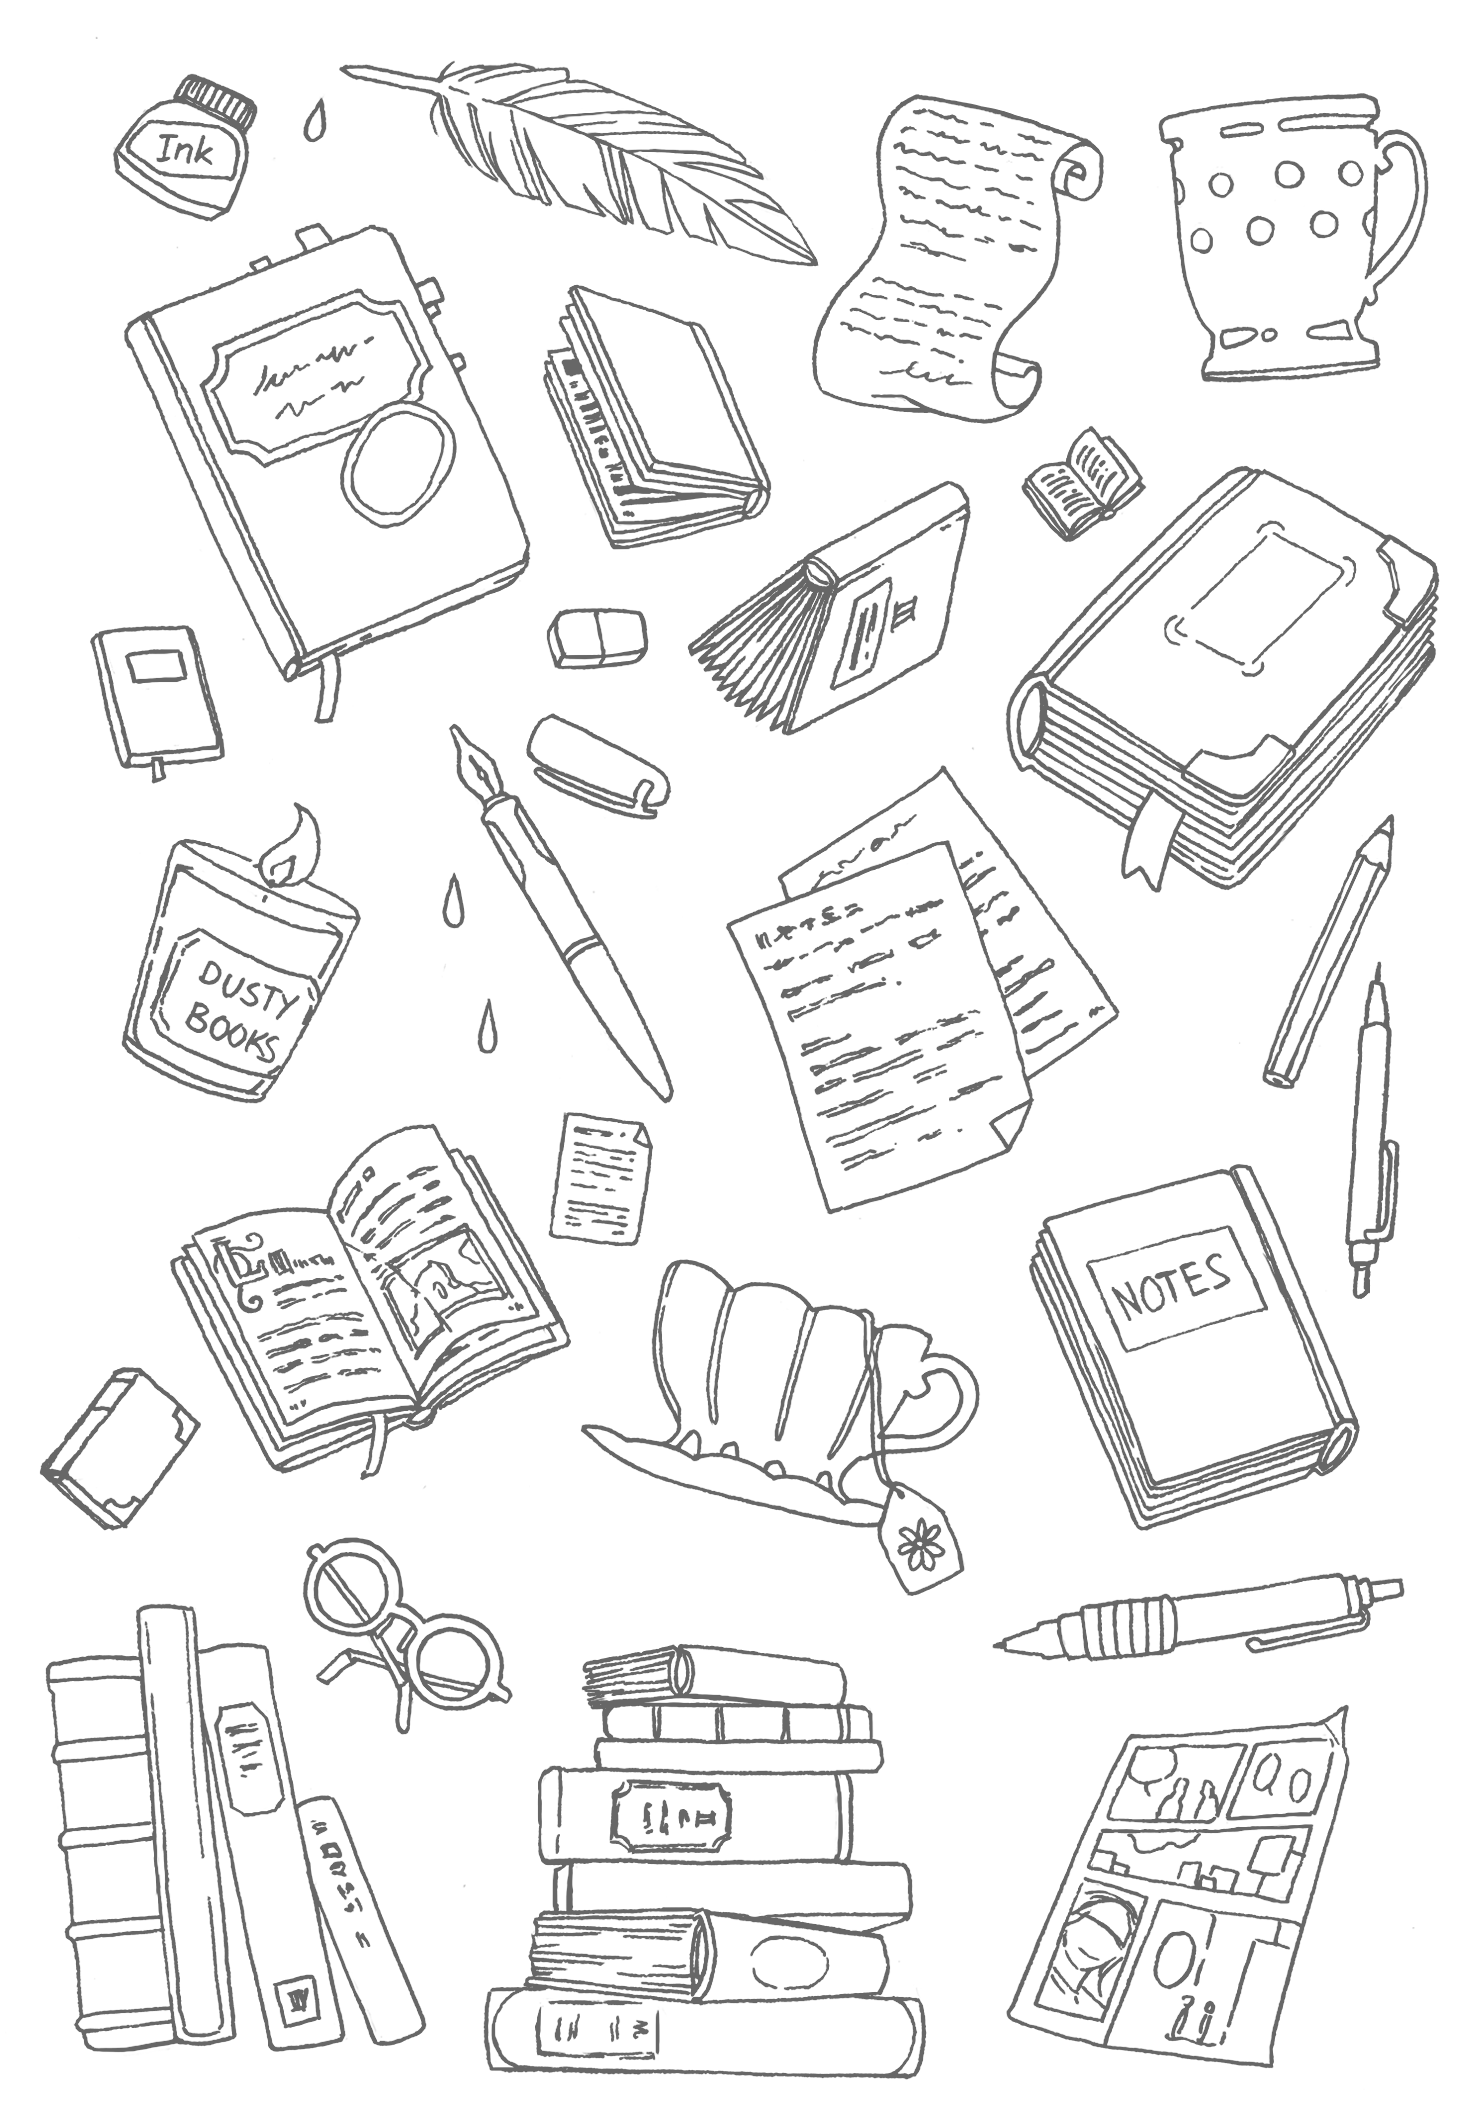 NaNoWriMo FREE printable coloring page: Books, notes, tea, and pens to color while you should be writing your novel...